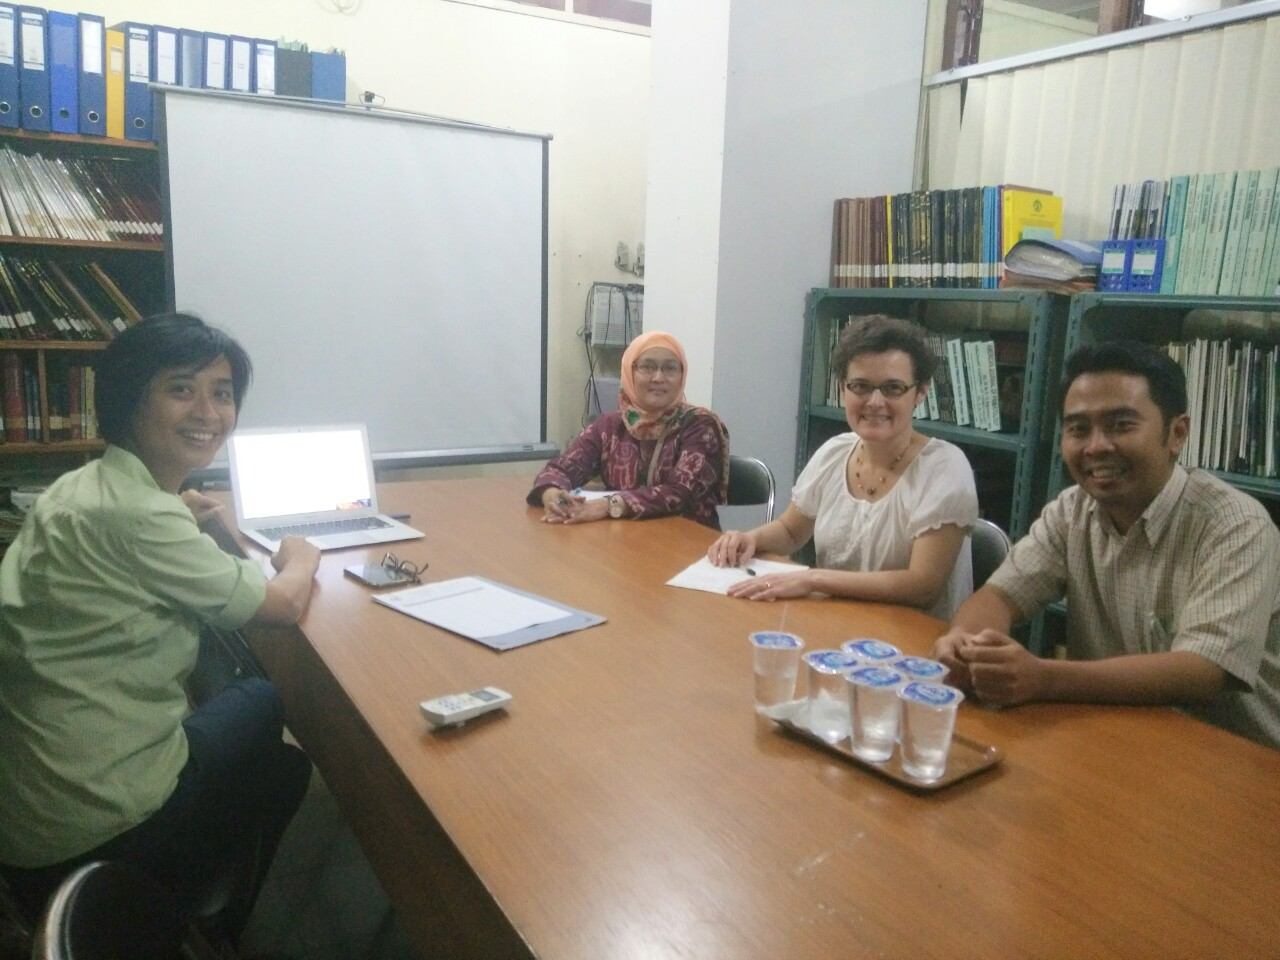 Pertemuan dengan Dr Tobi E. Nagel dari Phage for Global Health